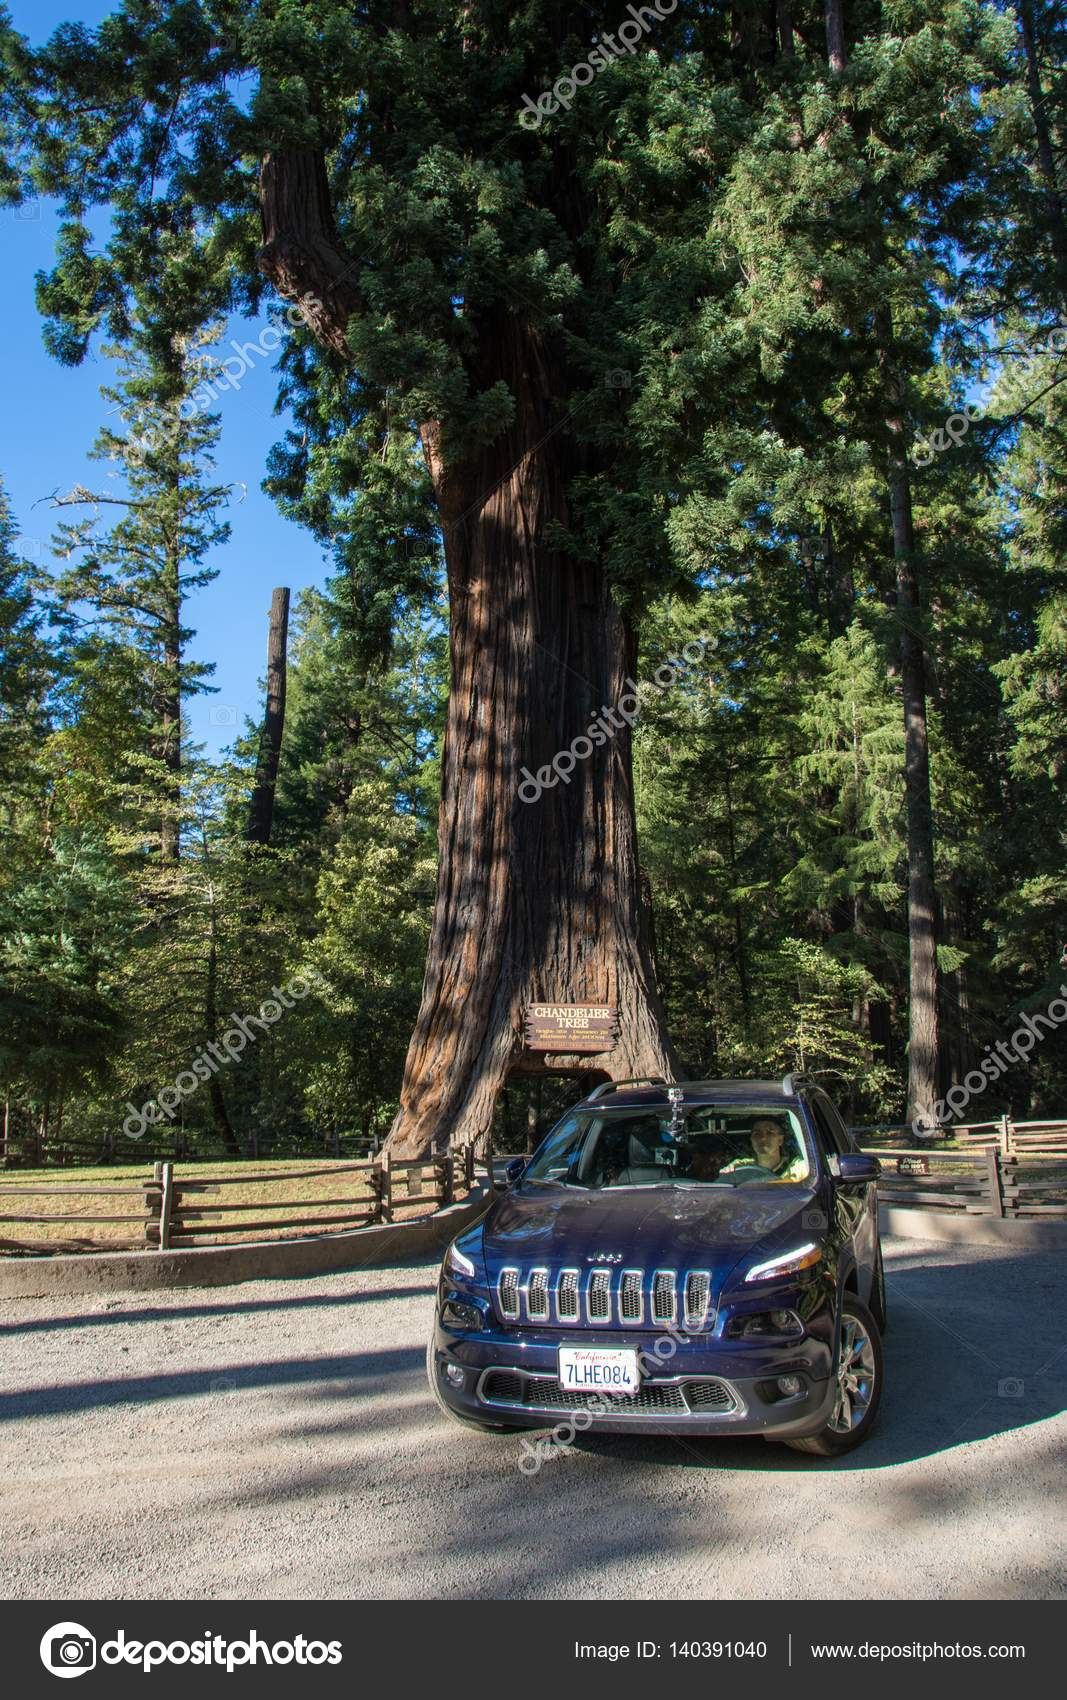 California usa june 17 2015 jeep cherokee rides through the california usa june 17 2015 jeep cherokee rides through the chandelier tree in leggett photo by maksershov arubaitofo Choice Image